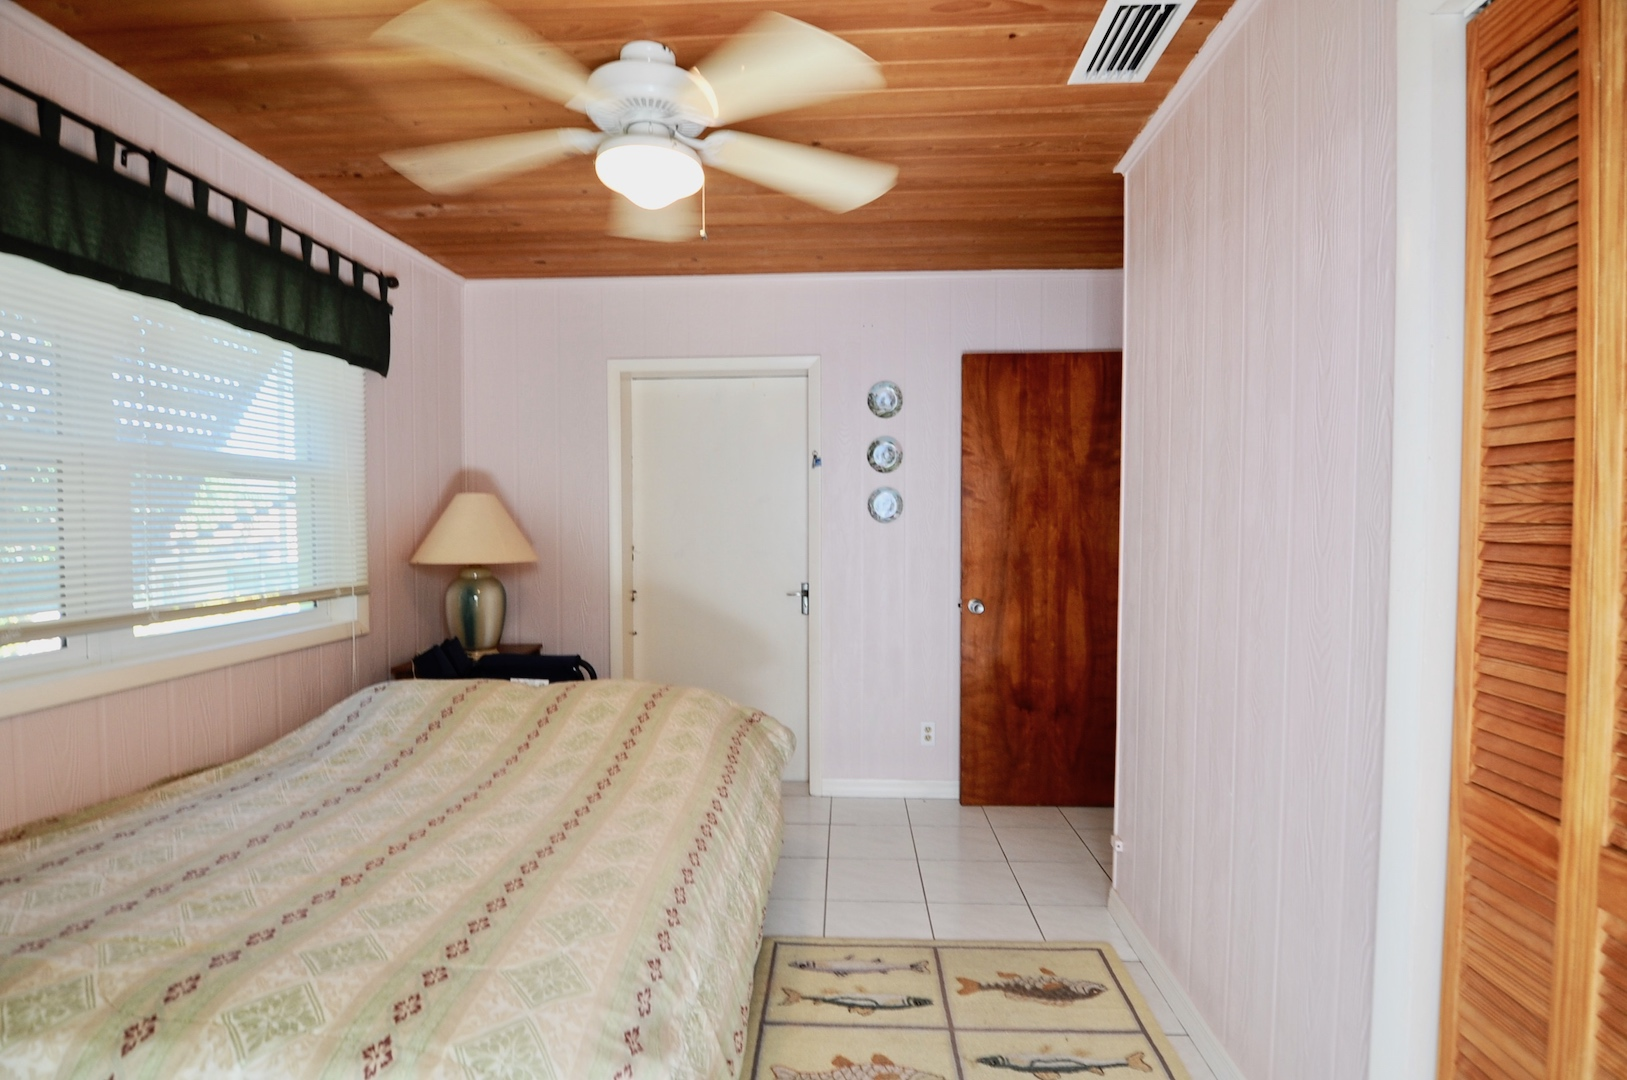 home for sale in Man-O-War Cay Abaco Bahamas with bonus room